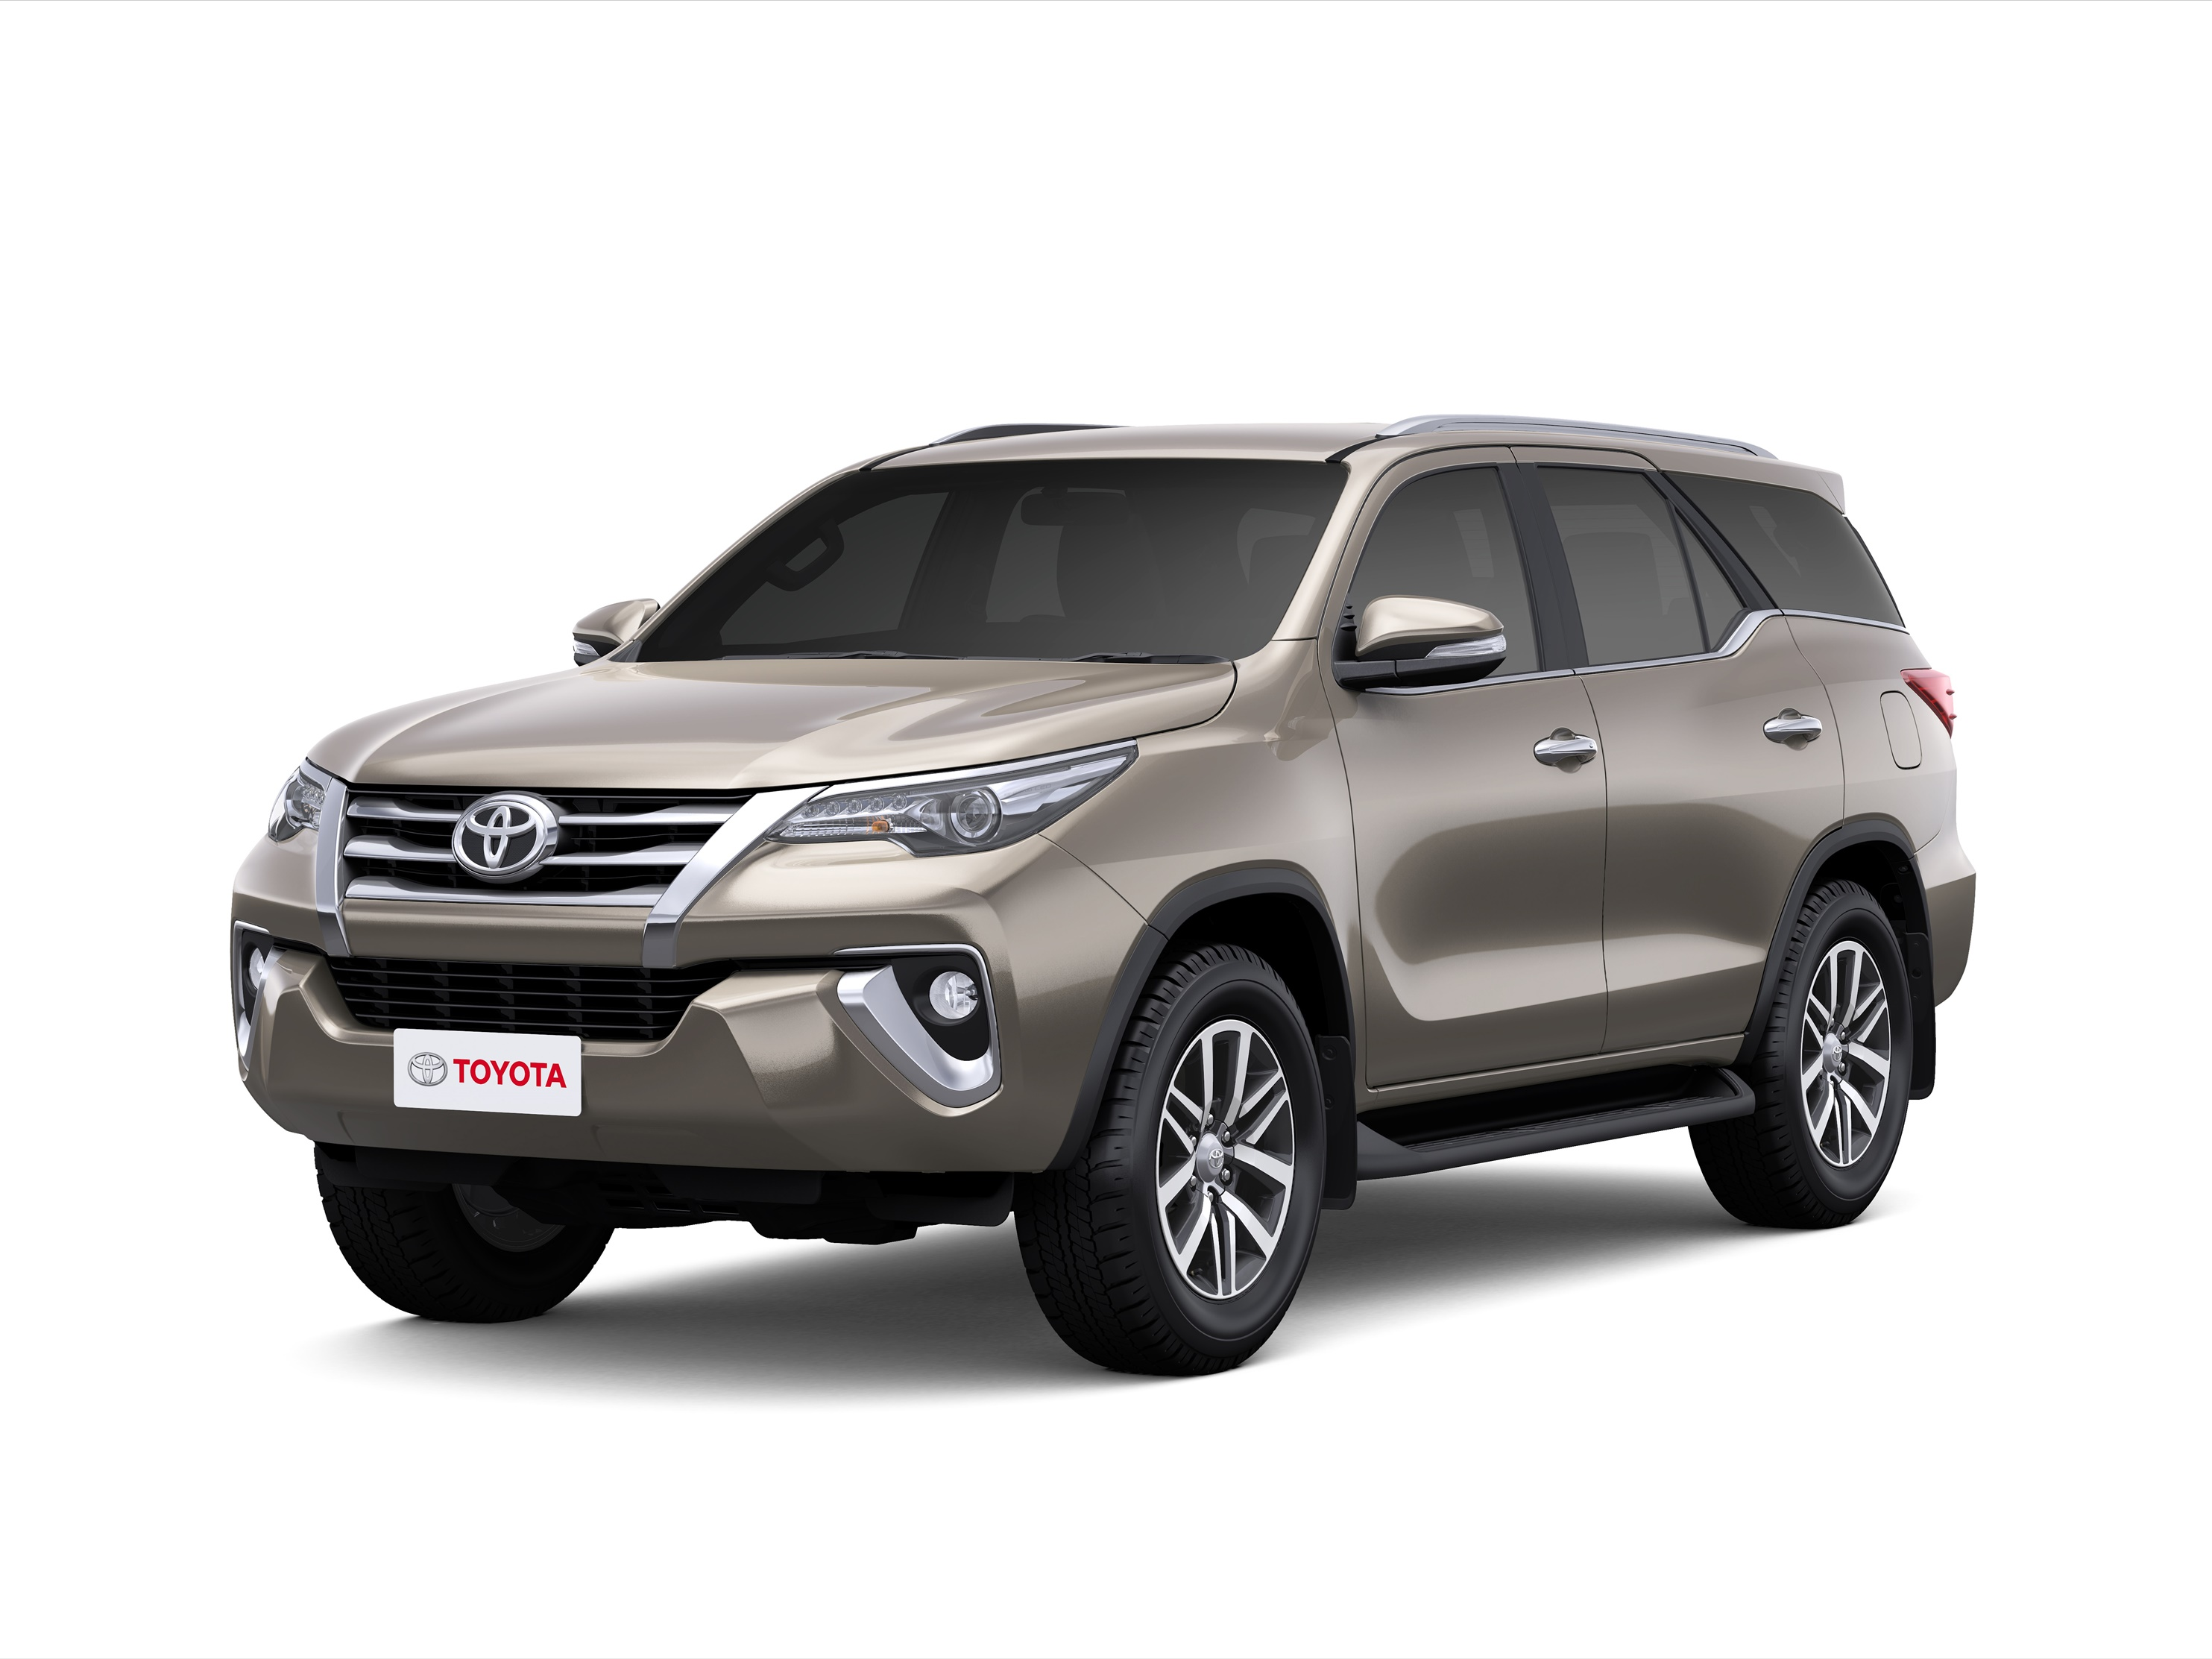 2016 toyota fortuner launched in india two variants 2 8l diesel and 2 7l petrol